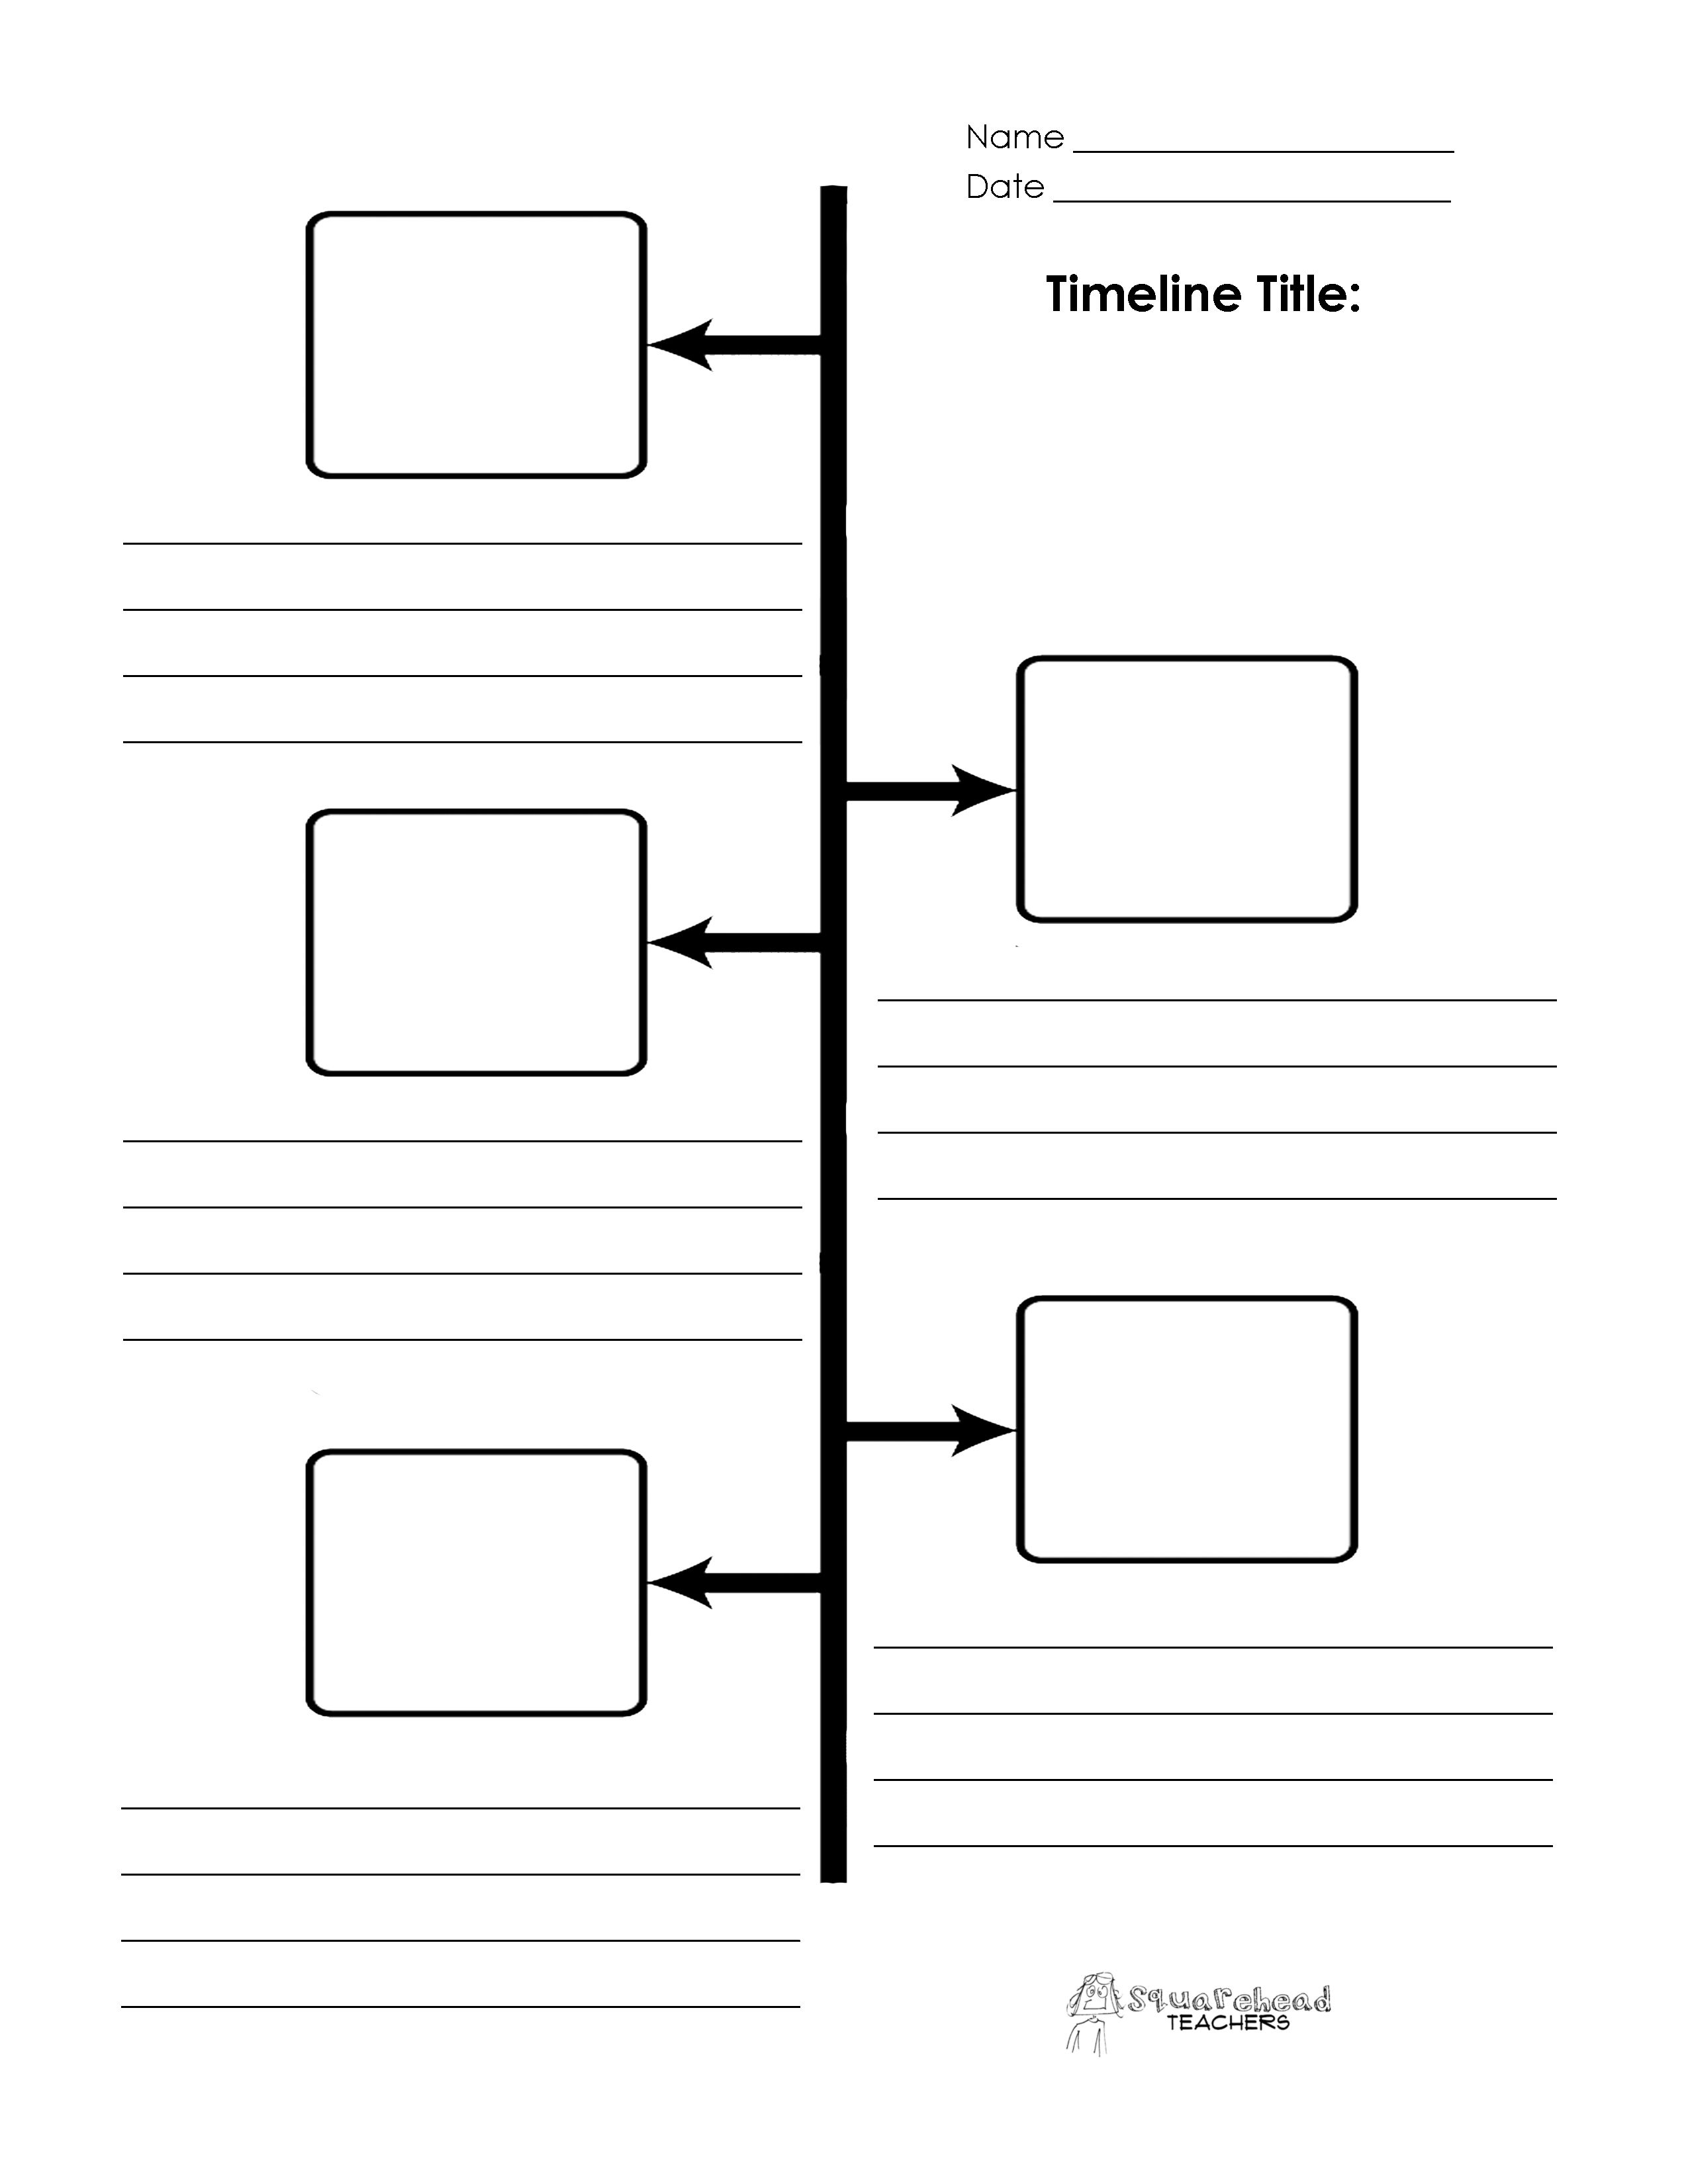 hight resolution of timeline-boxes-and-lines.jpg 2